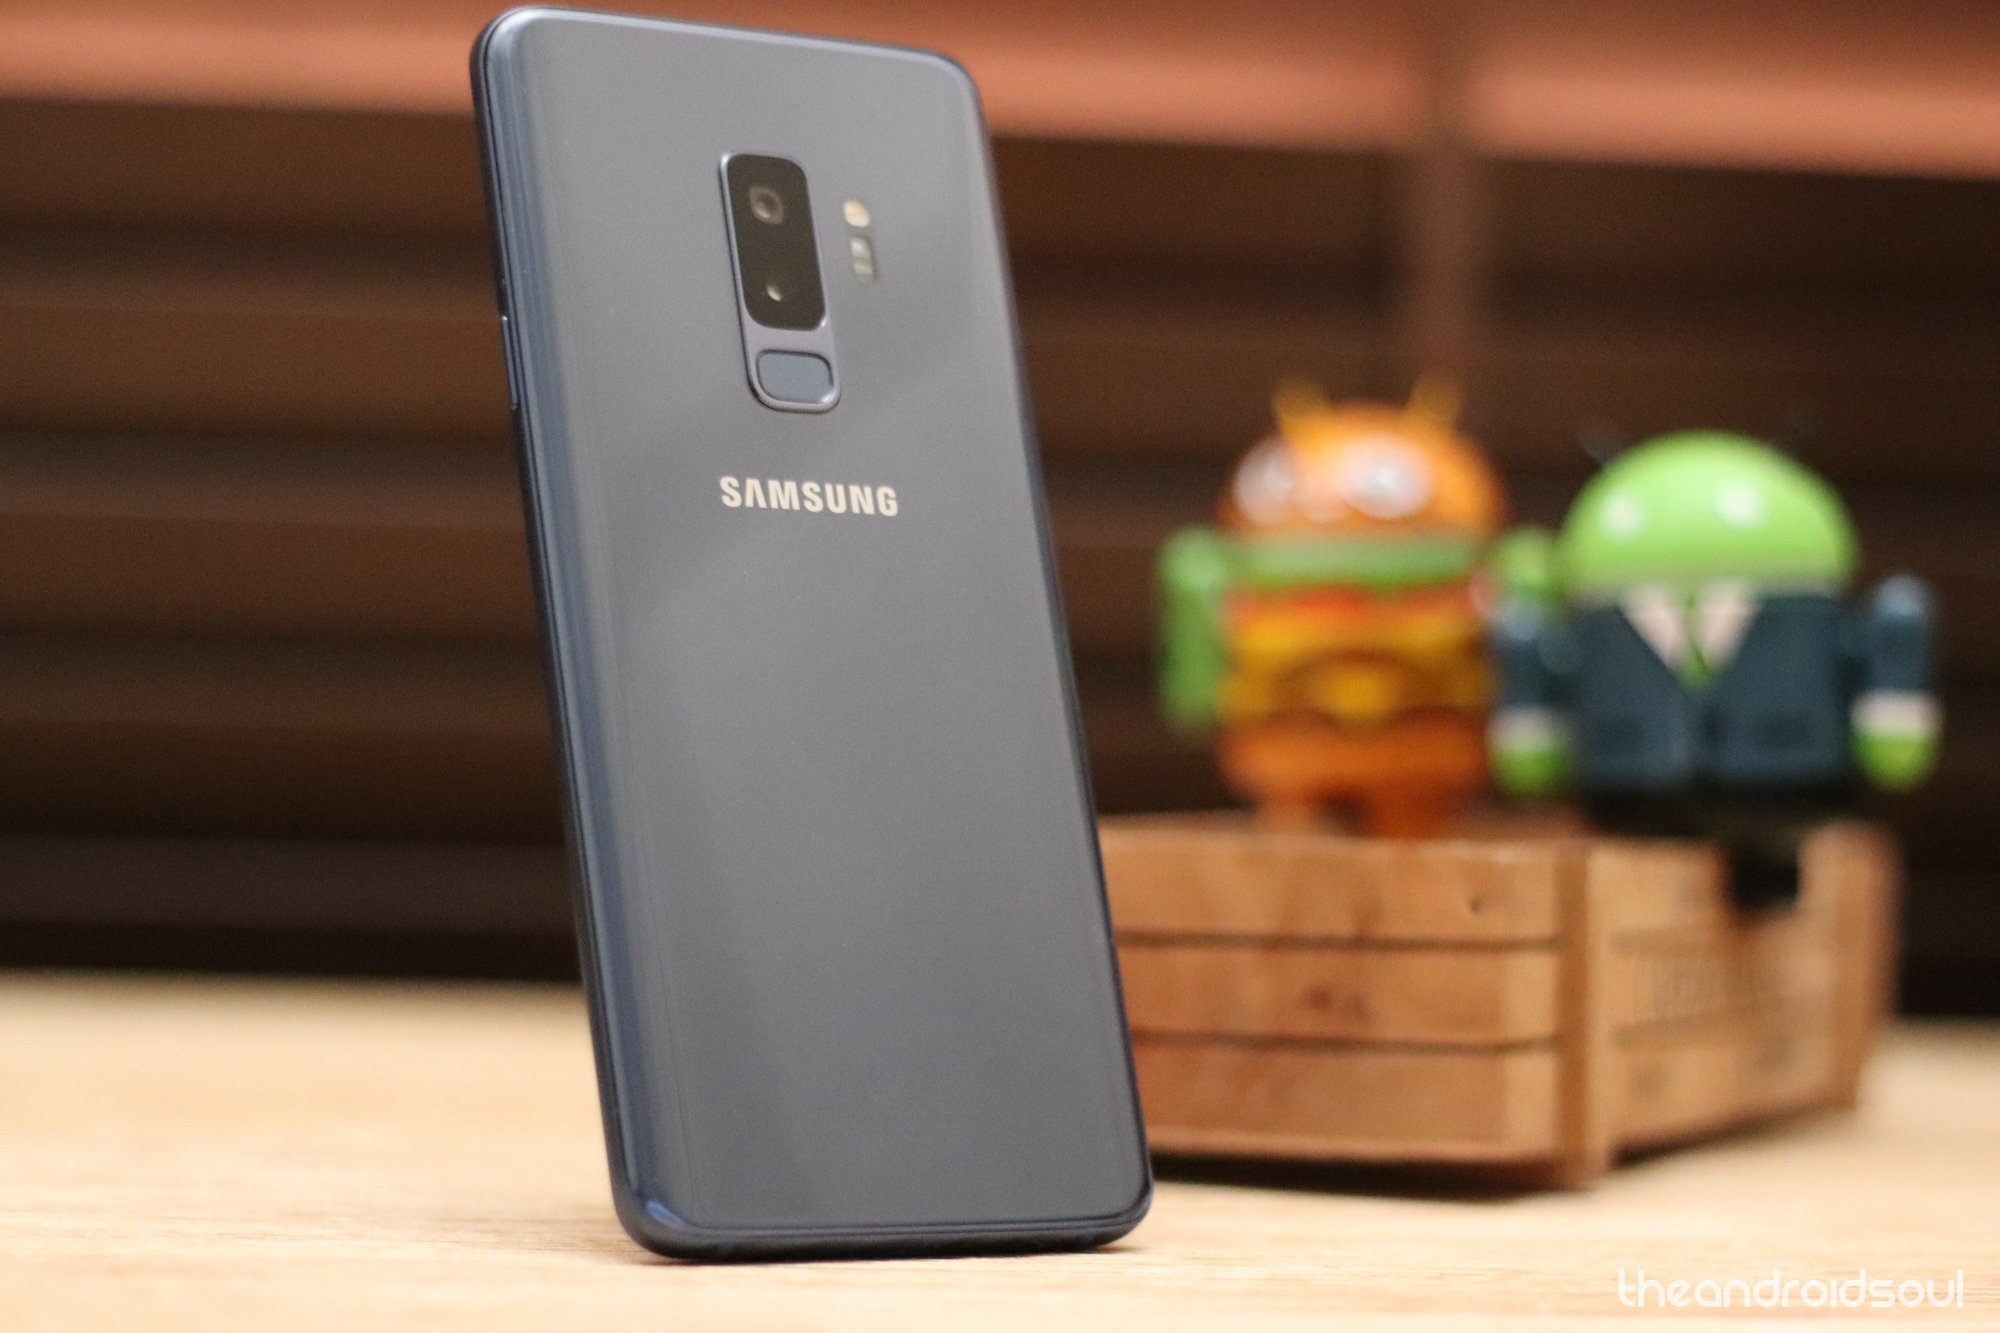 Galaxy S9 Android Pie beta 3 update with One UI has been released as